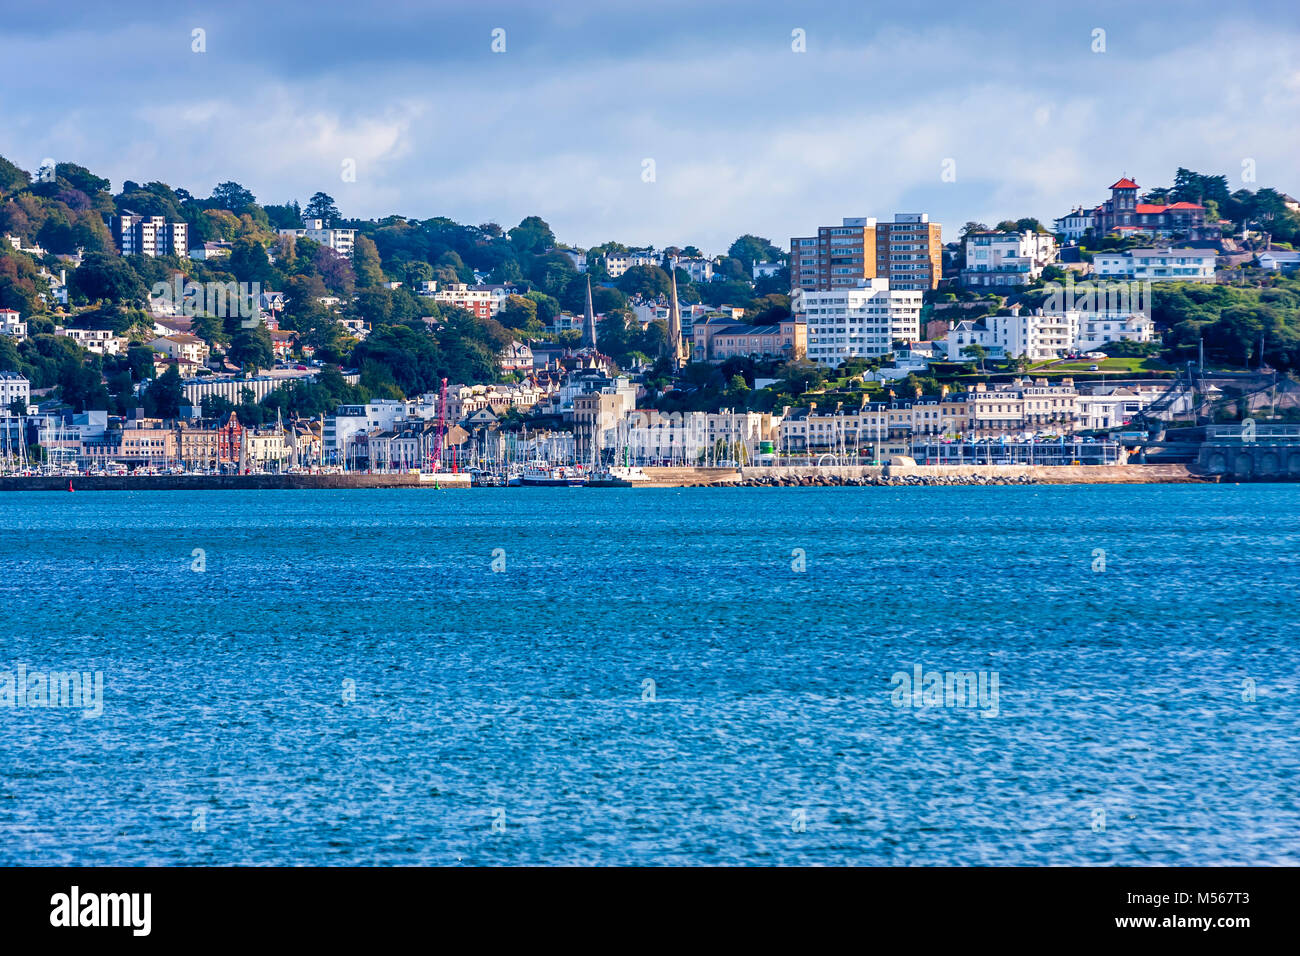 A view across the bay at Brixham in South Devon, UK. - Stock Image